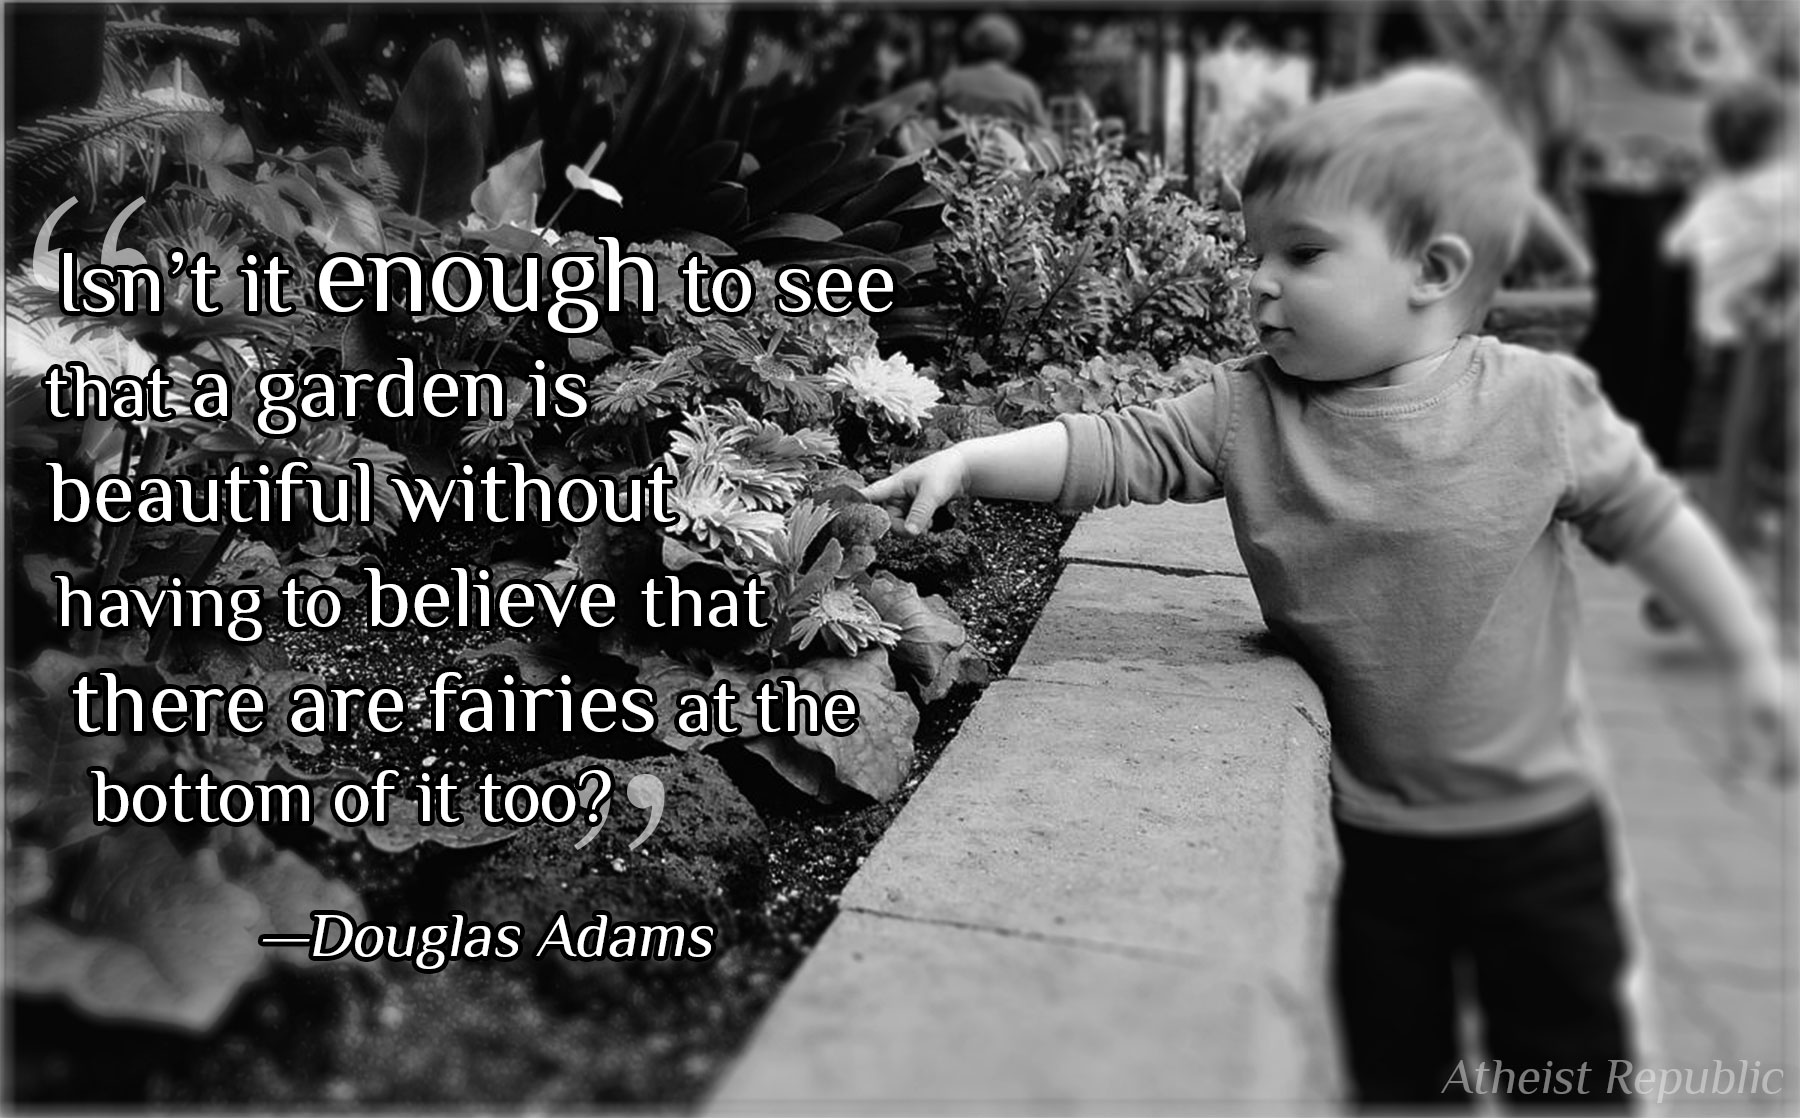 Douglas Adams: Isn't it enough to see that a garden is beautiful